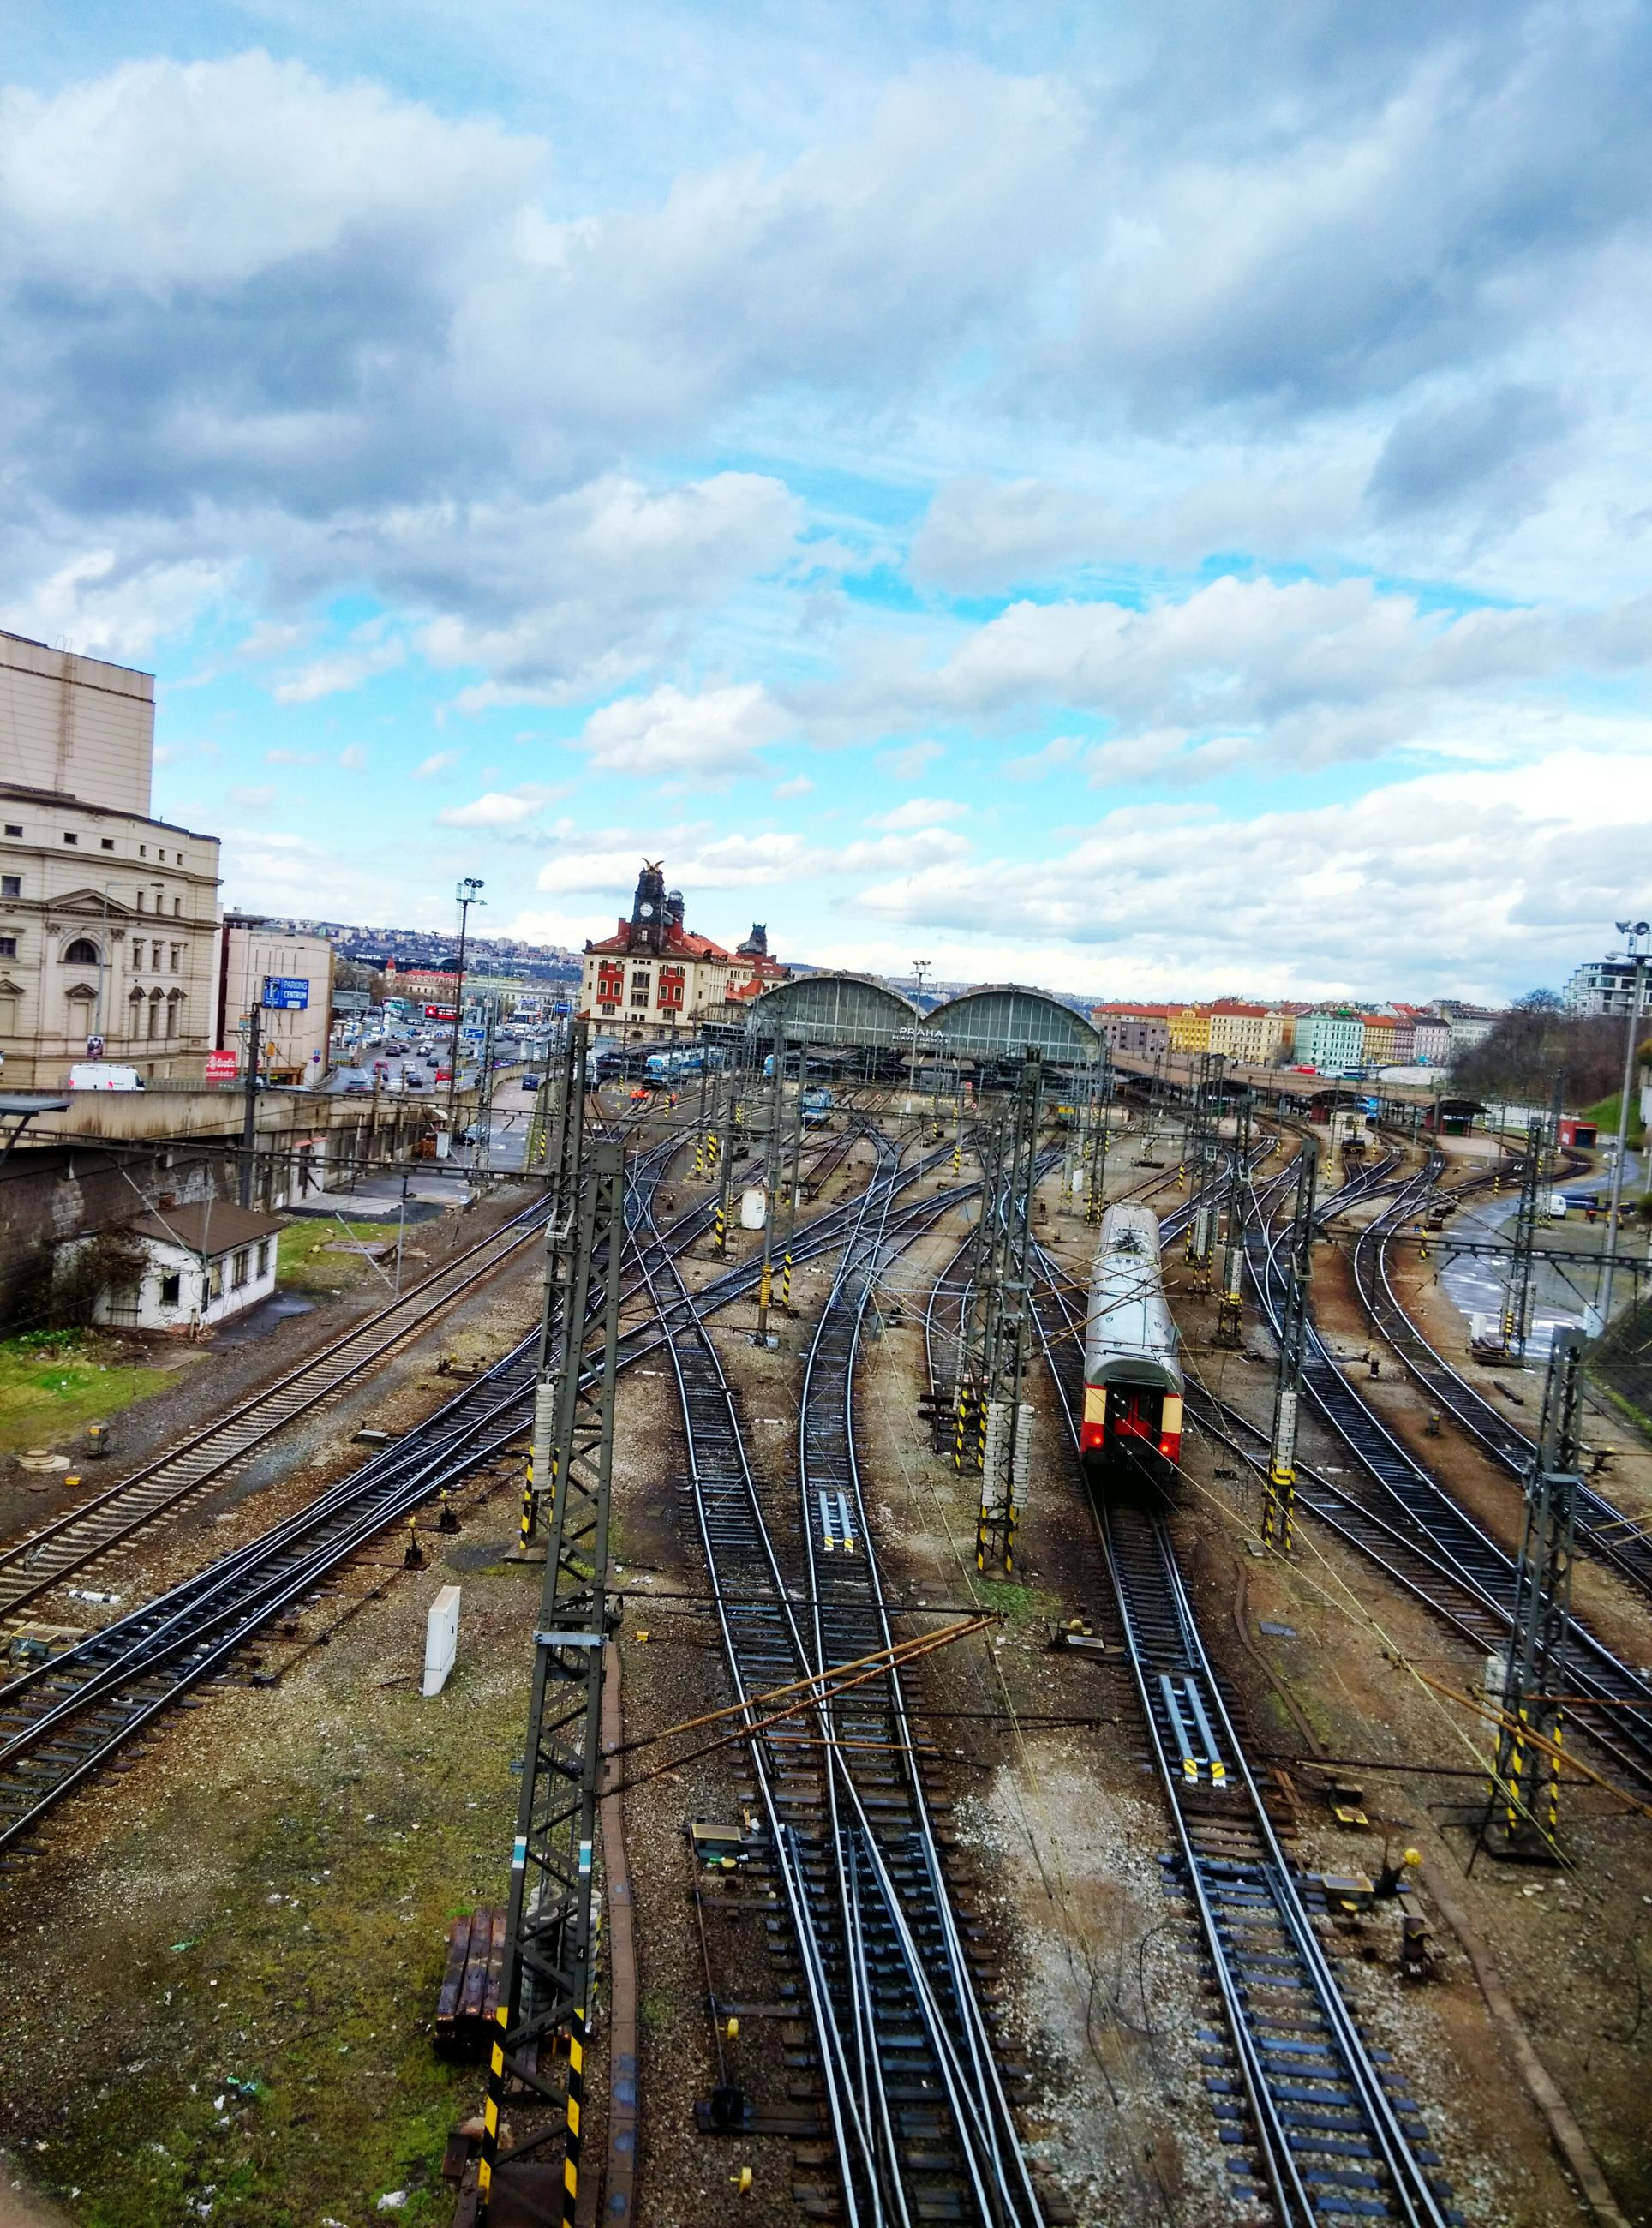 railroad track, transportation, building exterior, architecture, built structure, high angle view, city, rail transportation, public transportation, sky, cloud - sky, railroad station, mode of transport, city life, the way forward, diminishing perspective, railroad station platform, vanishing point, cityscape, travel